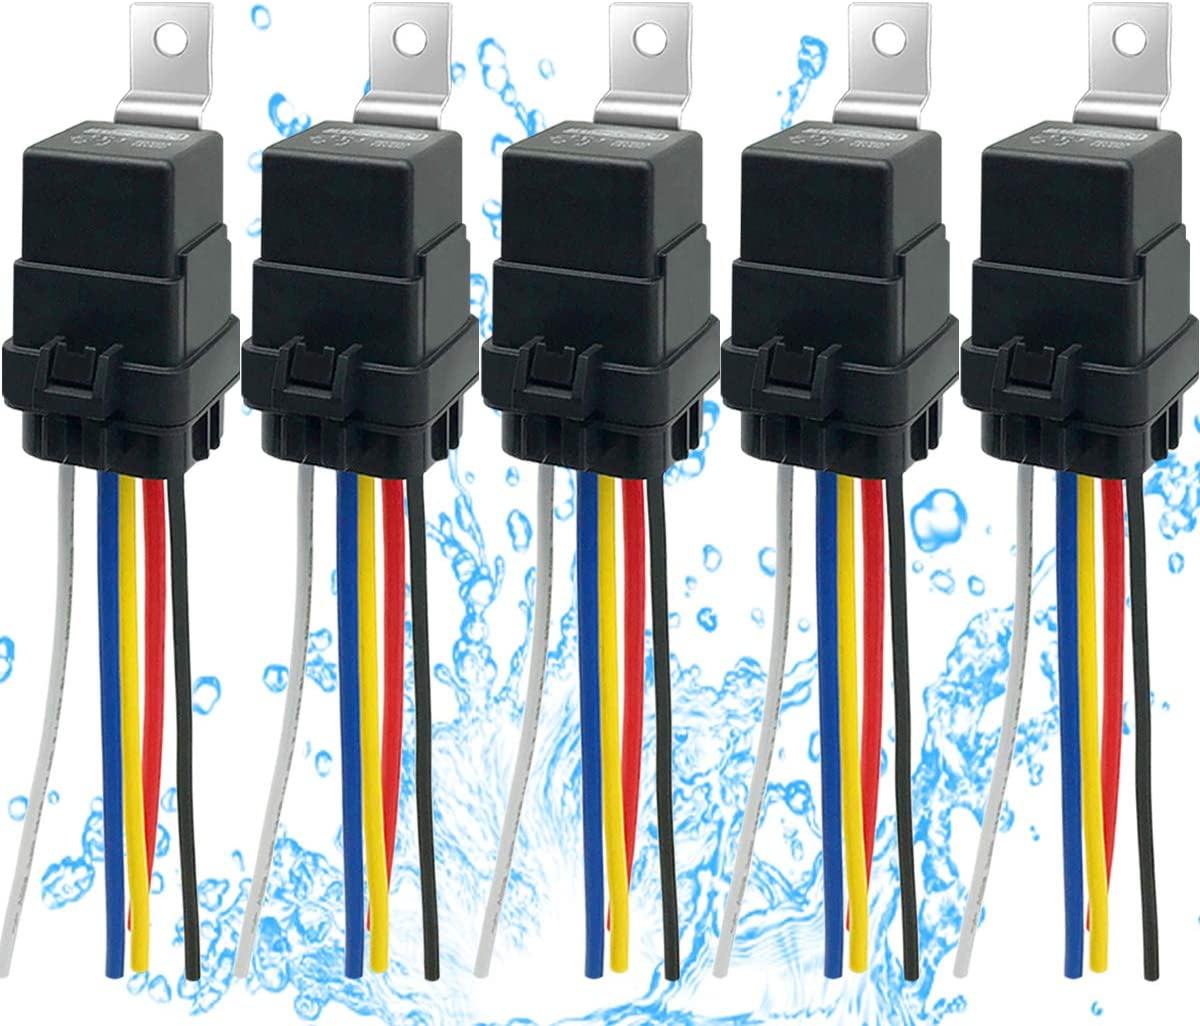 IRHAPSODY 5 PACK 80/60 AMP Waterproof Relay and Harness - Heavy Duty 12 AWG Wires, 12 V DC 5-PIN SPDT Bosch Style Automotive Relay